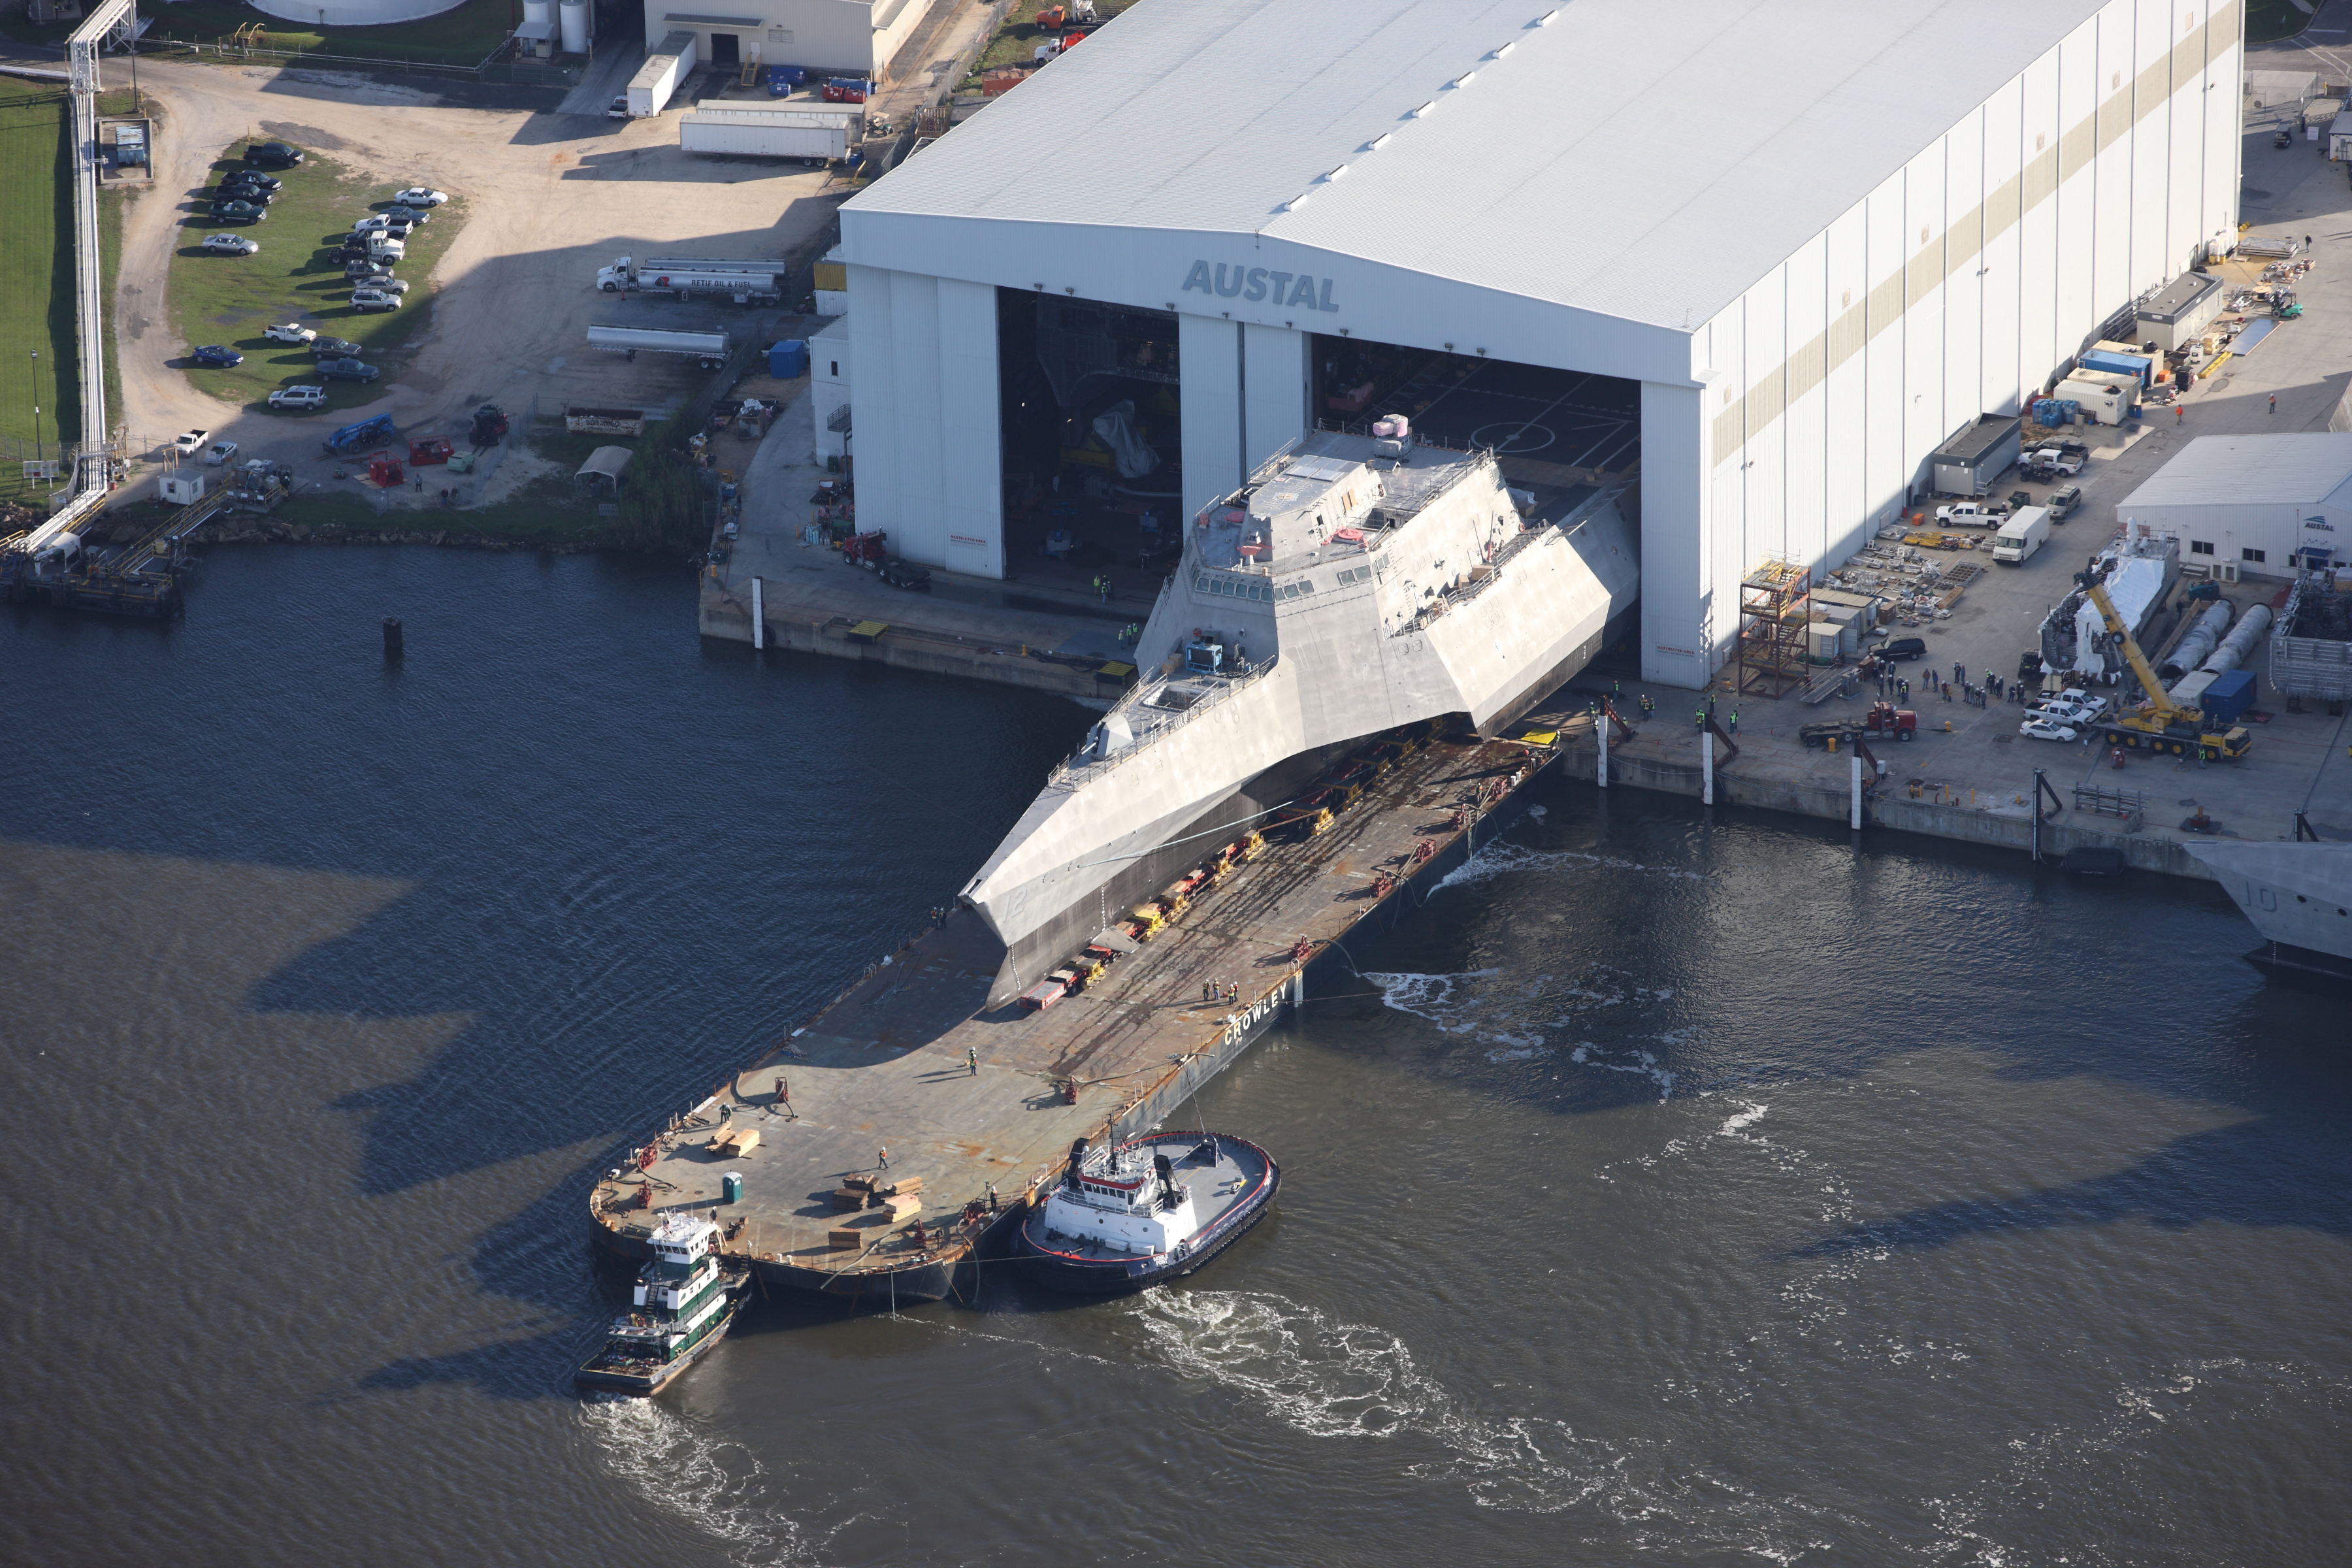 Austal announces 154% profit growth in 2018 - Manufacturers' Monthly